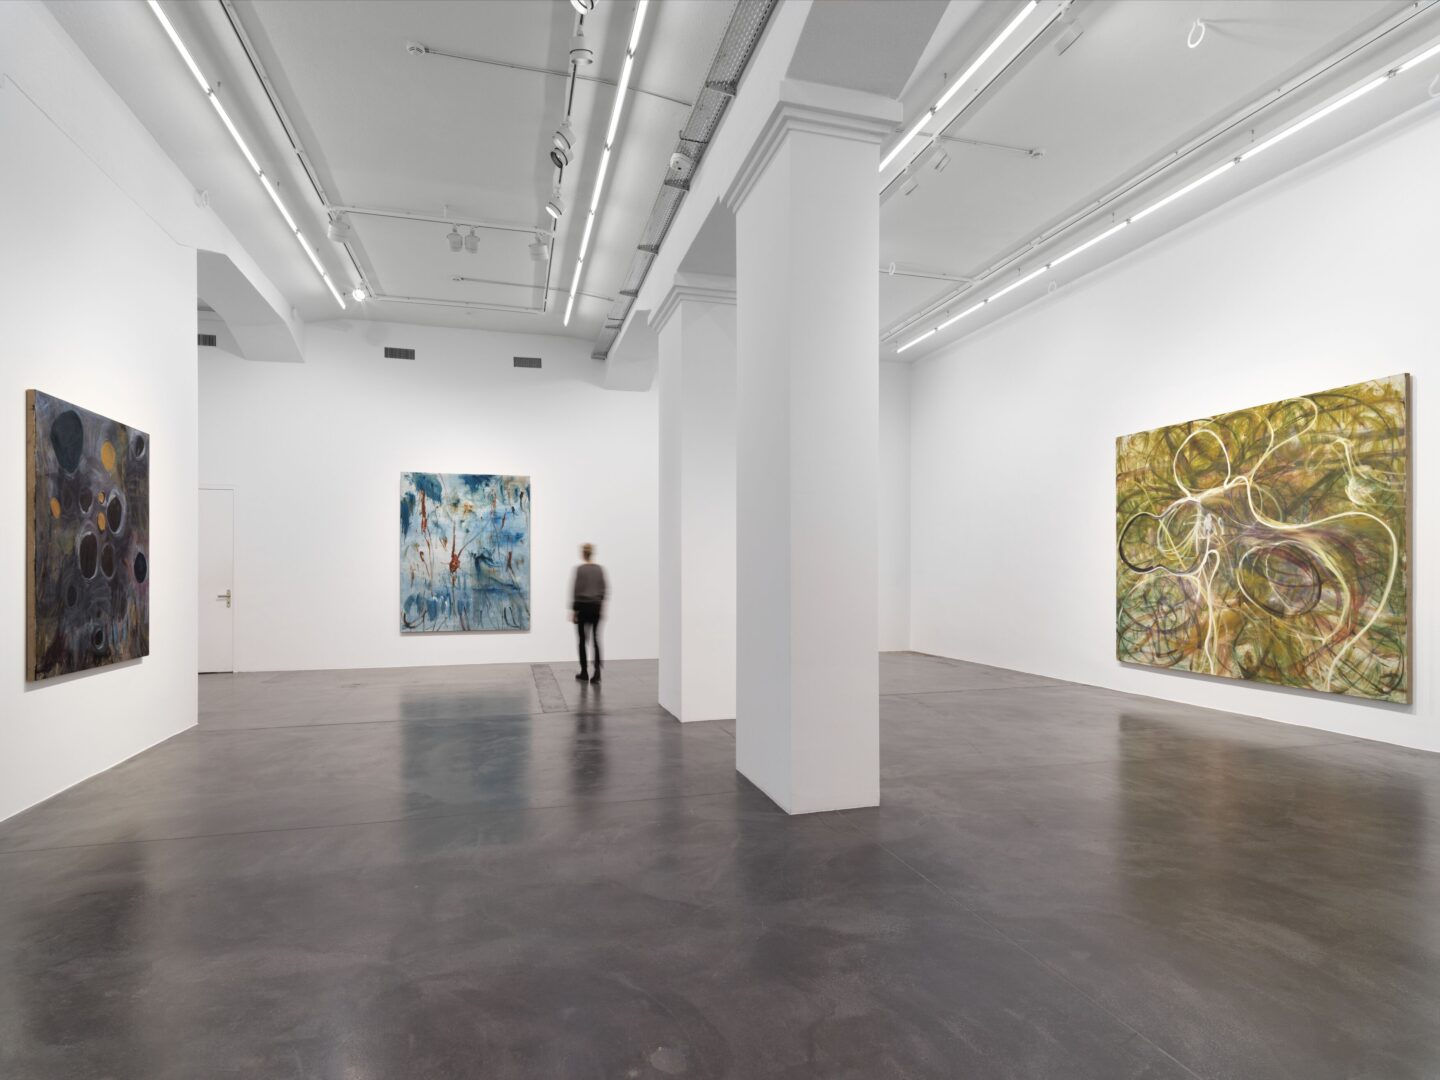 Exhibition View Zhang Enli Soloshow «New Paintings» at Hauser & Wirth, Zurich, 2020 / © Zhang Enli / Courtesy the artist and Hauser & Wirth